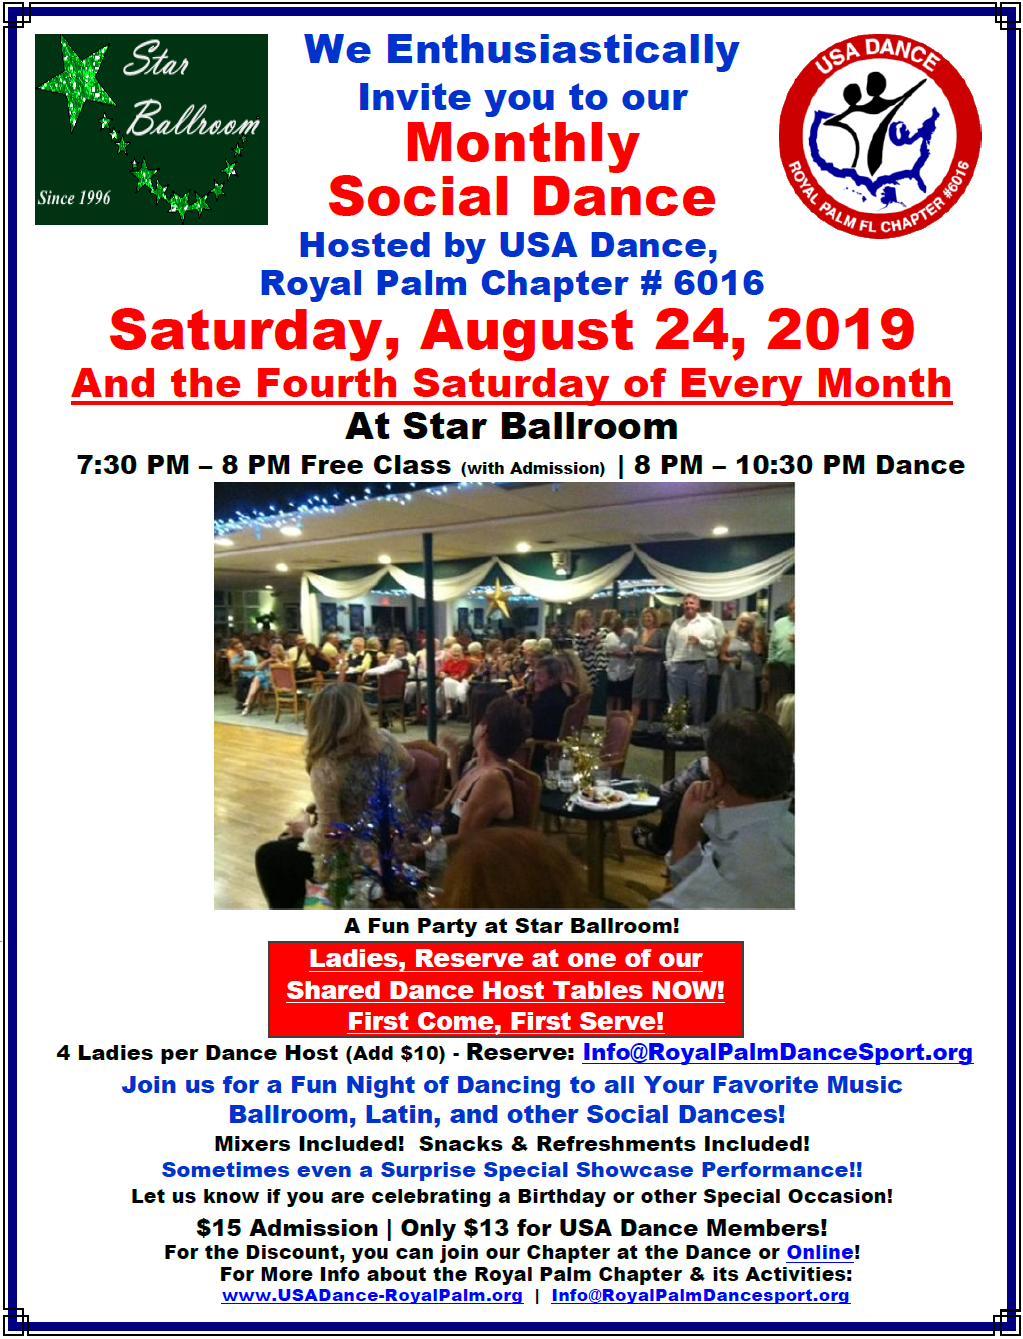 Don't Miss our August 24, 2019 Monthly Social Dance Hosted by USA Dance, Royal Palm Chapter at Star Ballroom